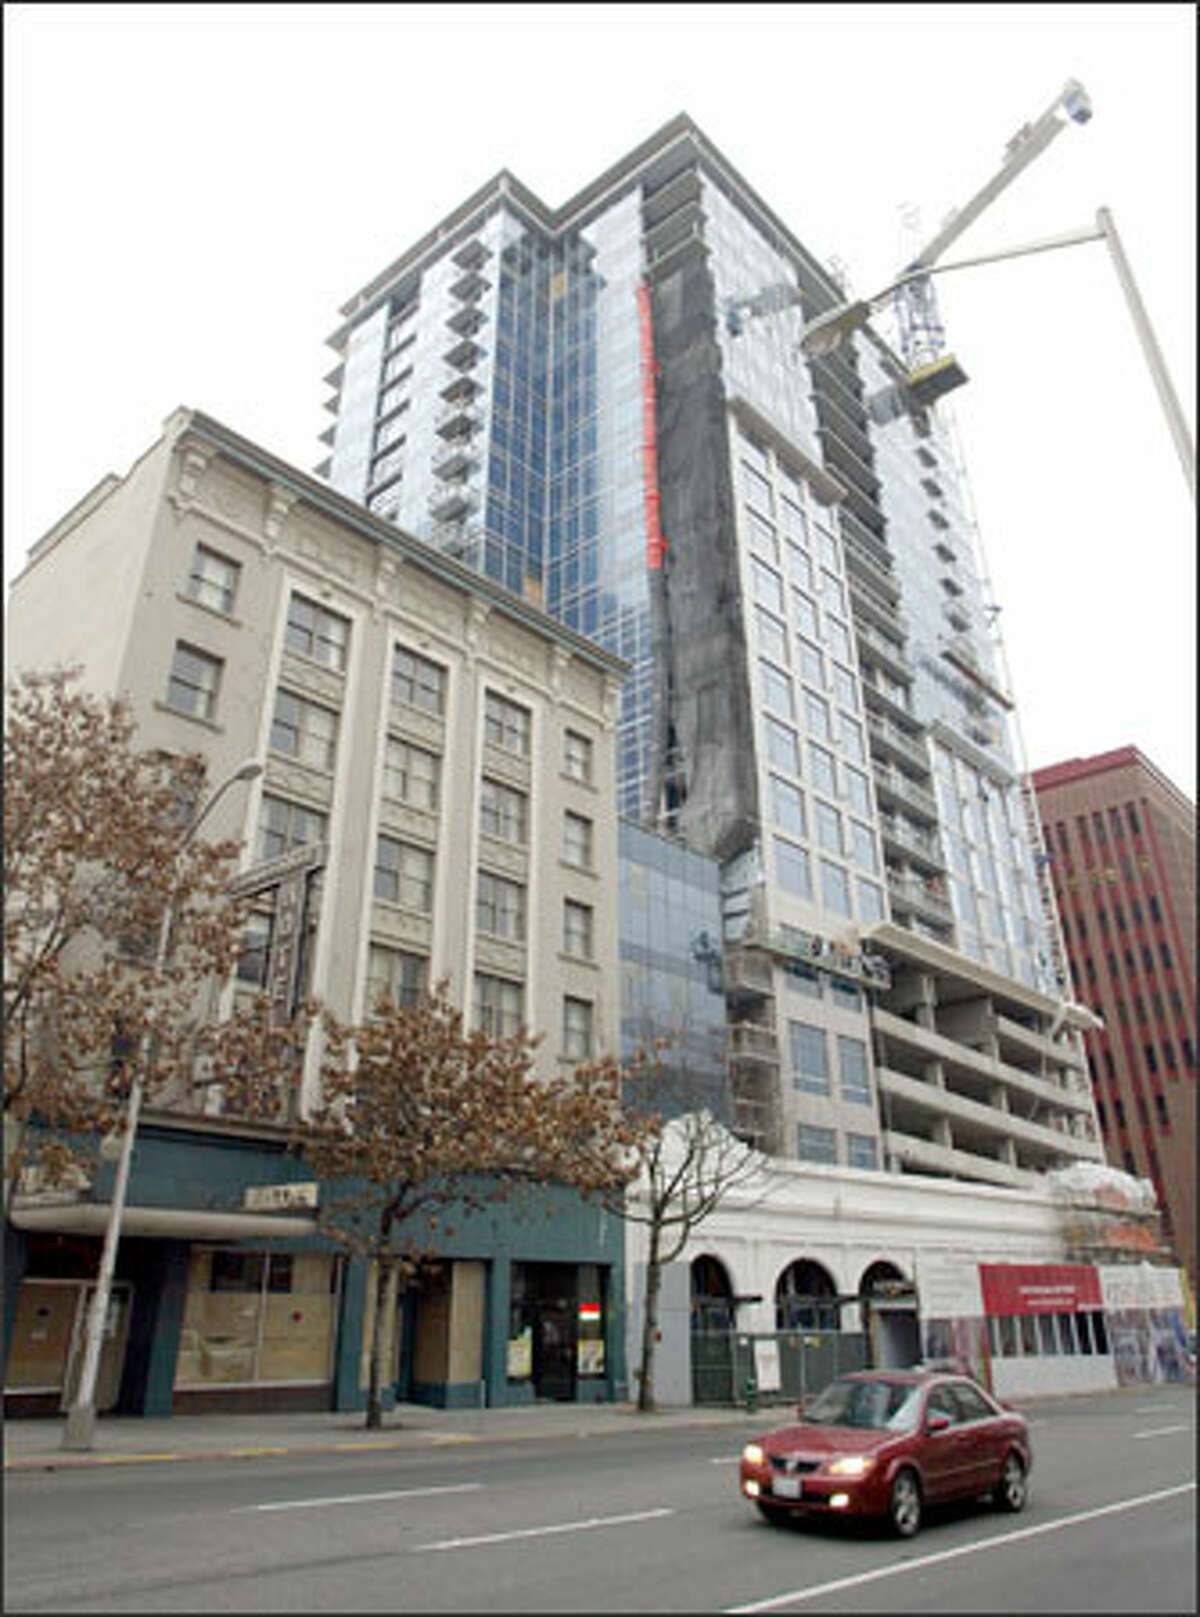 The Cristalla building at Second and Lenora was built under today's 240-foot height limit. Mayor Greg Nickels wants taller, more slender buildings.